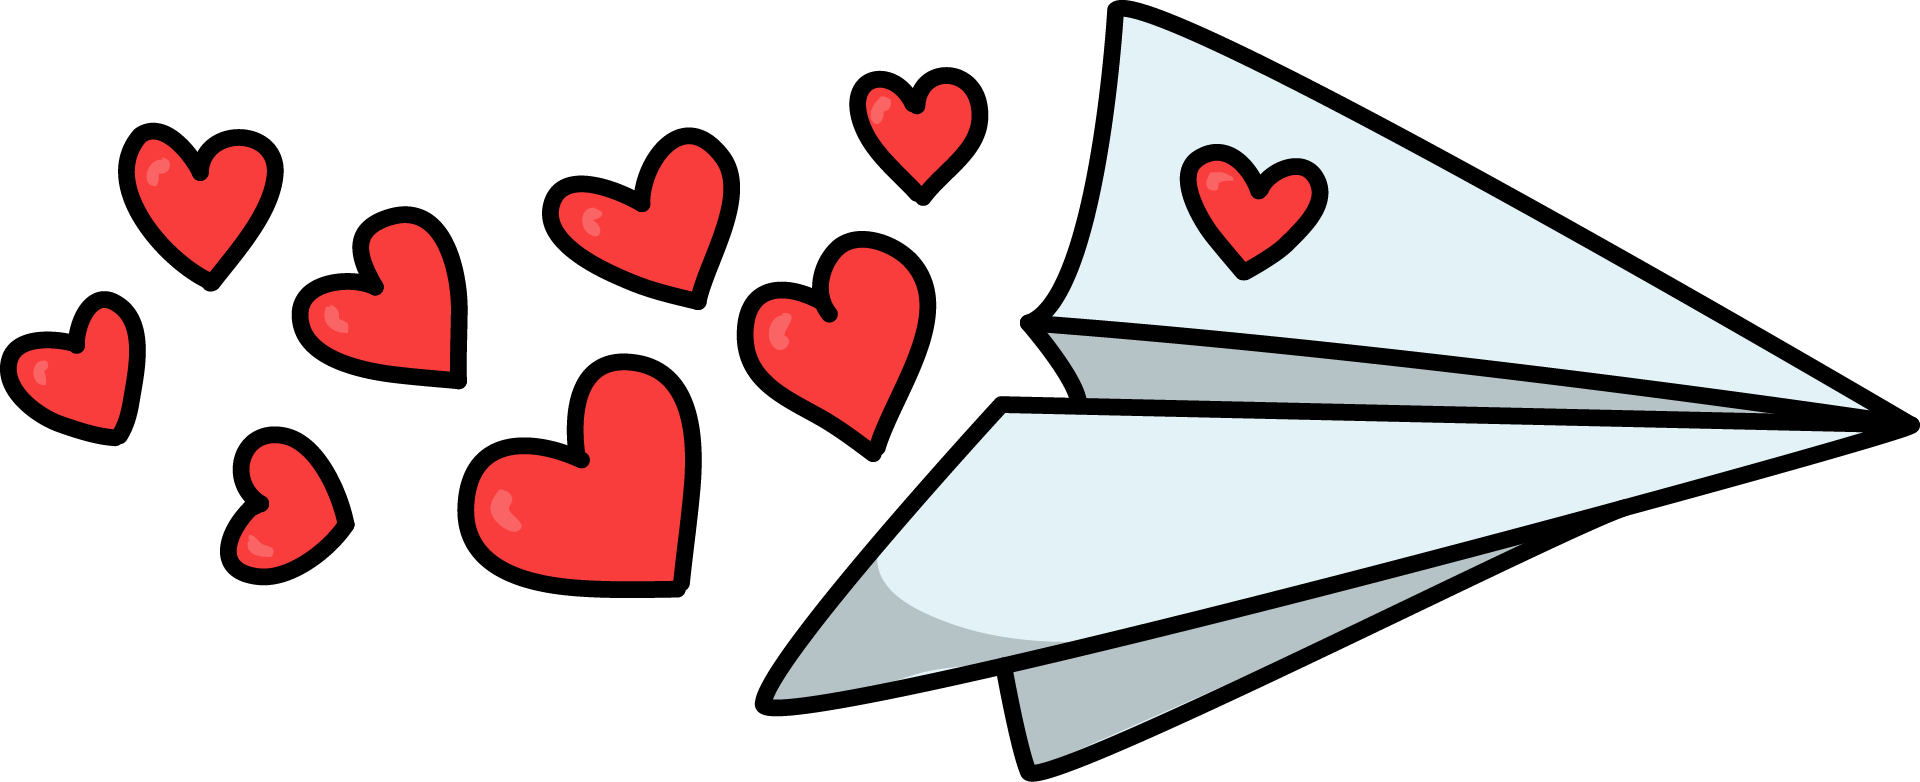 Clipart plane red. Free paper with hearts